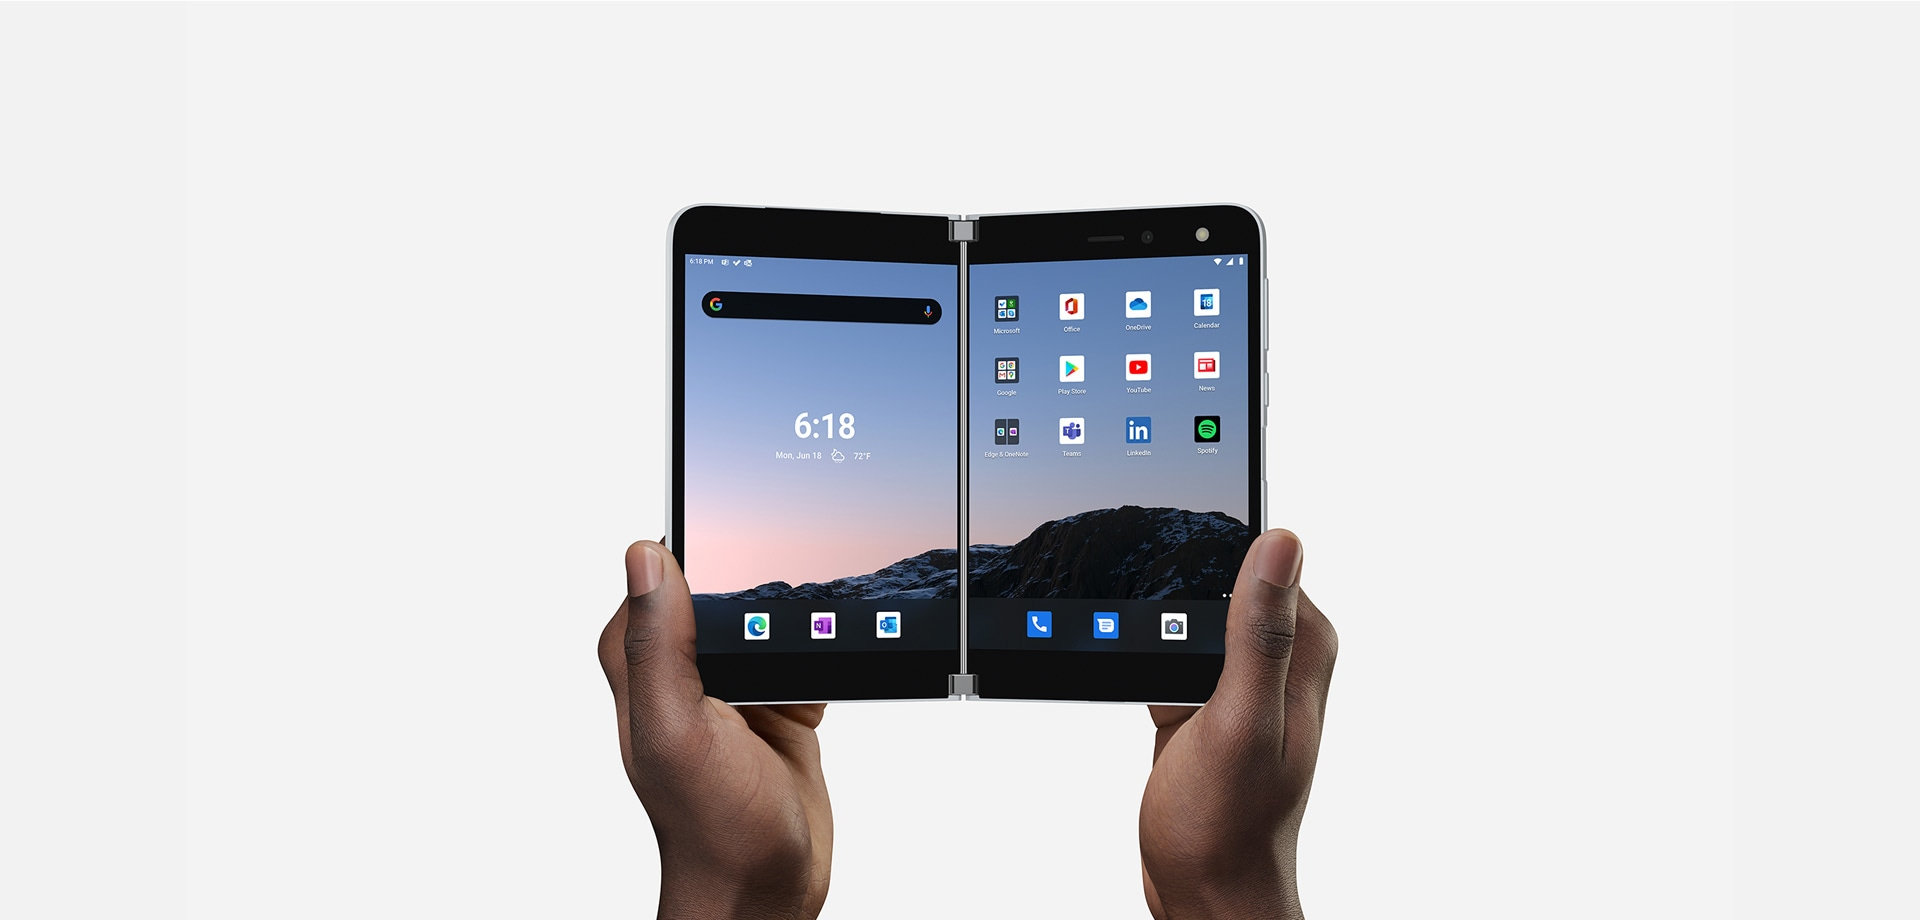 A pair of hands hold up Surface Duo in compose mode showing the home screen